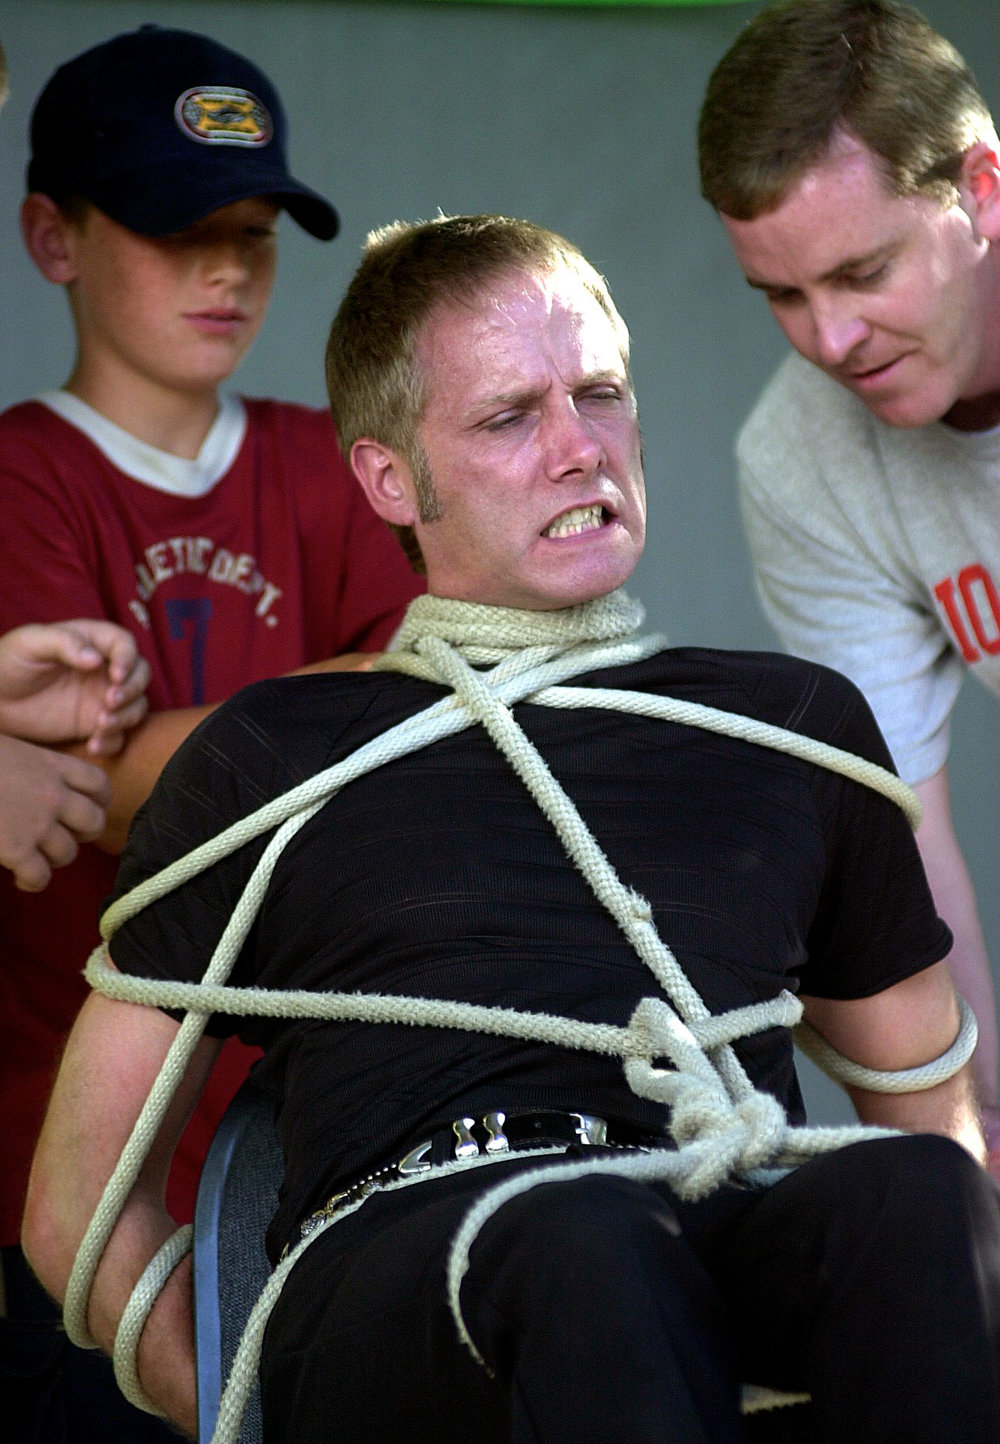 Escape Artist Michael Griffin attempts to defend his $1,000.00 Challenge from 50 feet of rope despite the herculean efforts of the challengers to keep him prisoner